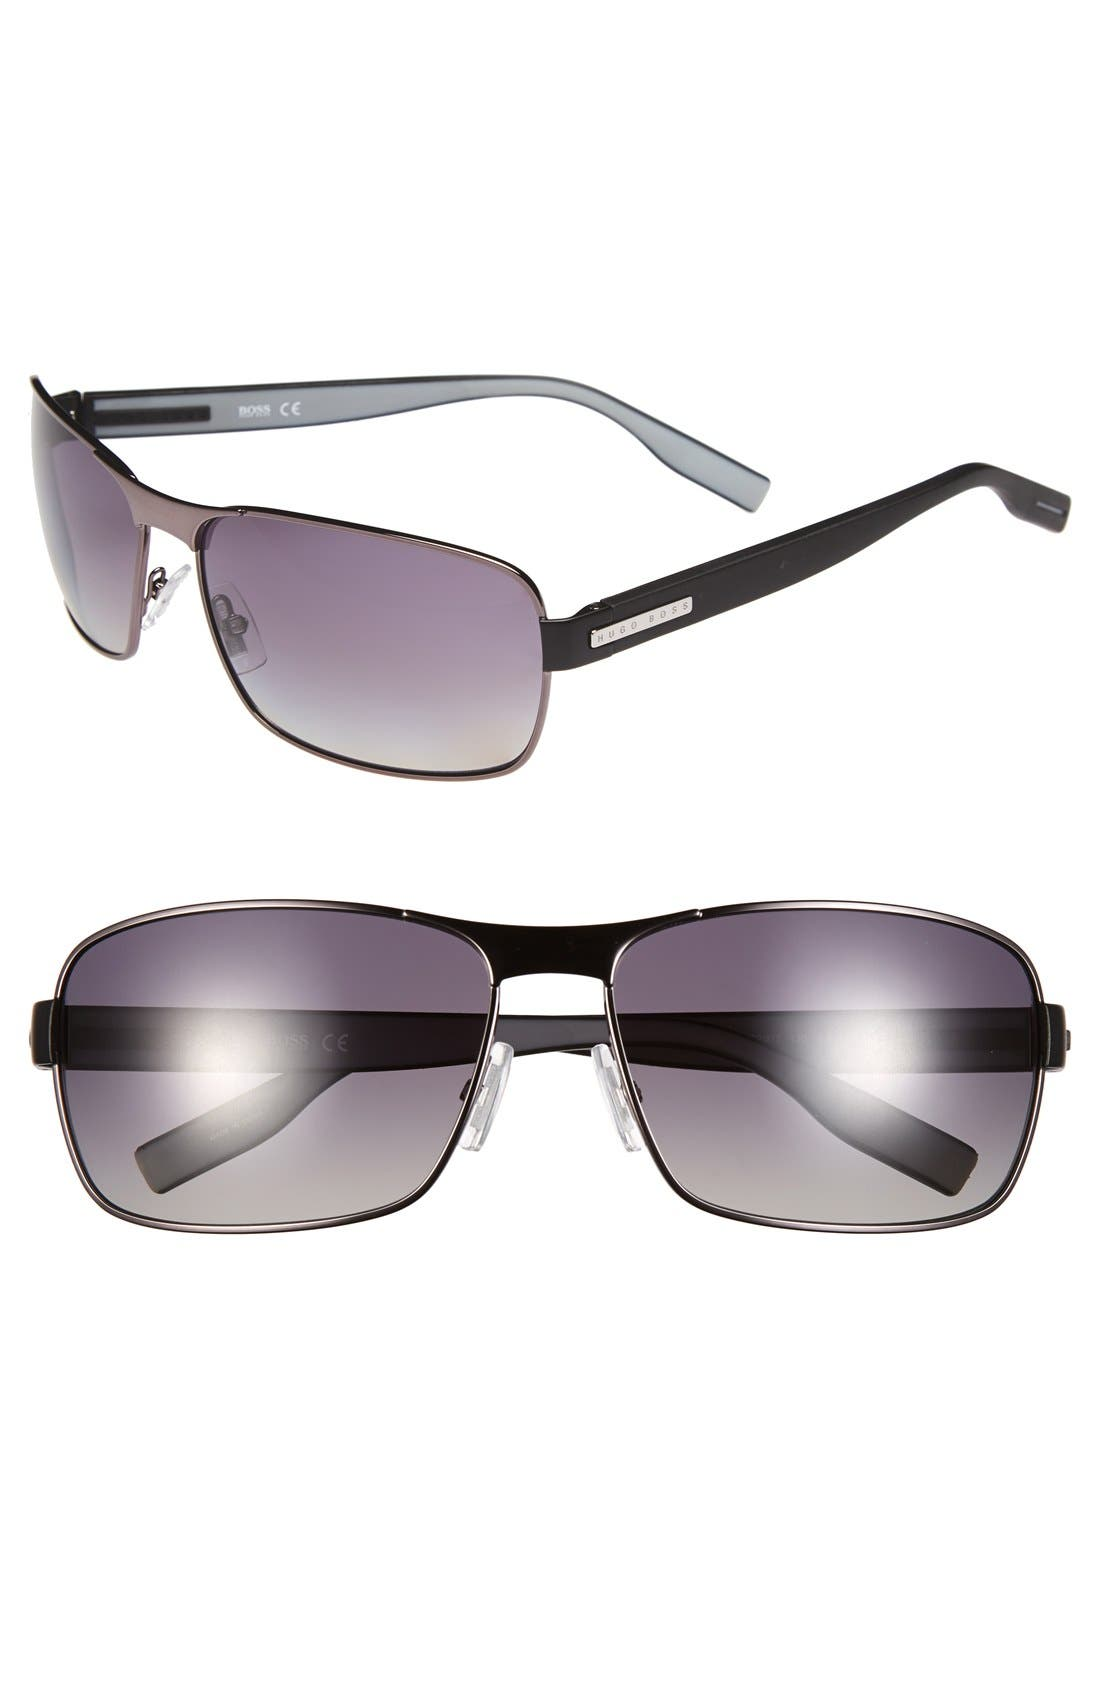 62mm Polarized Sunglasses,                         Main,                         color, Dark Ruthenuim